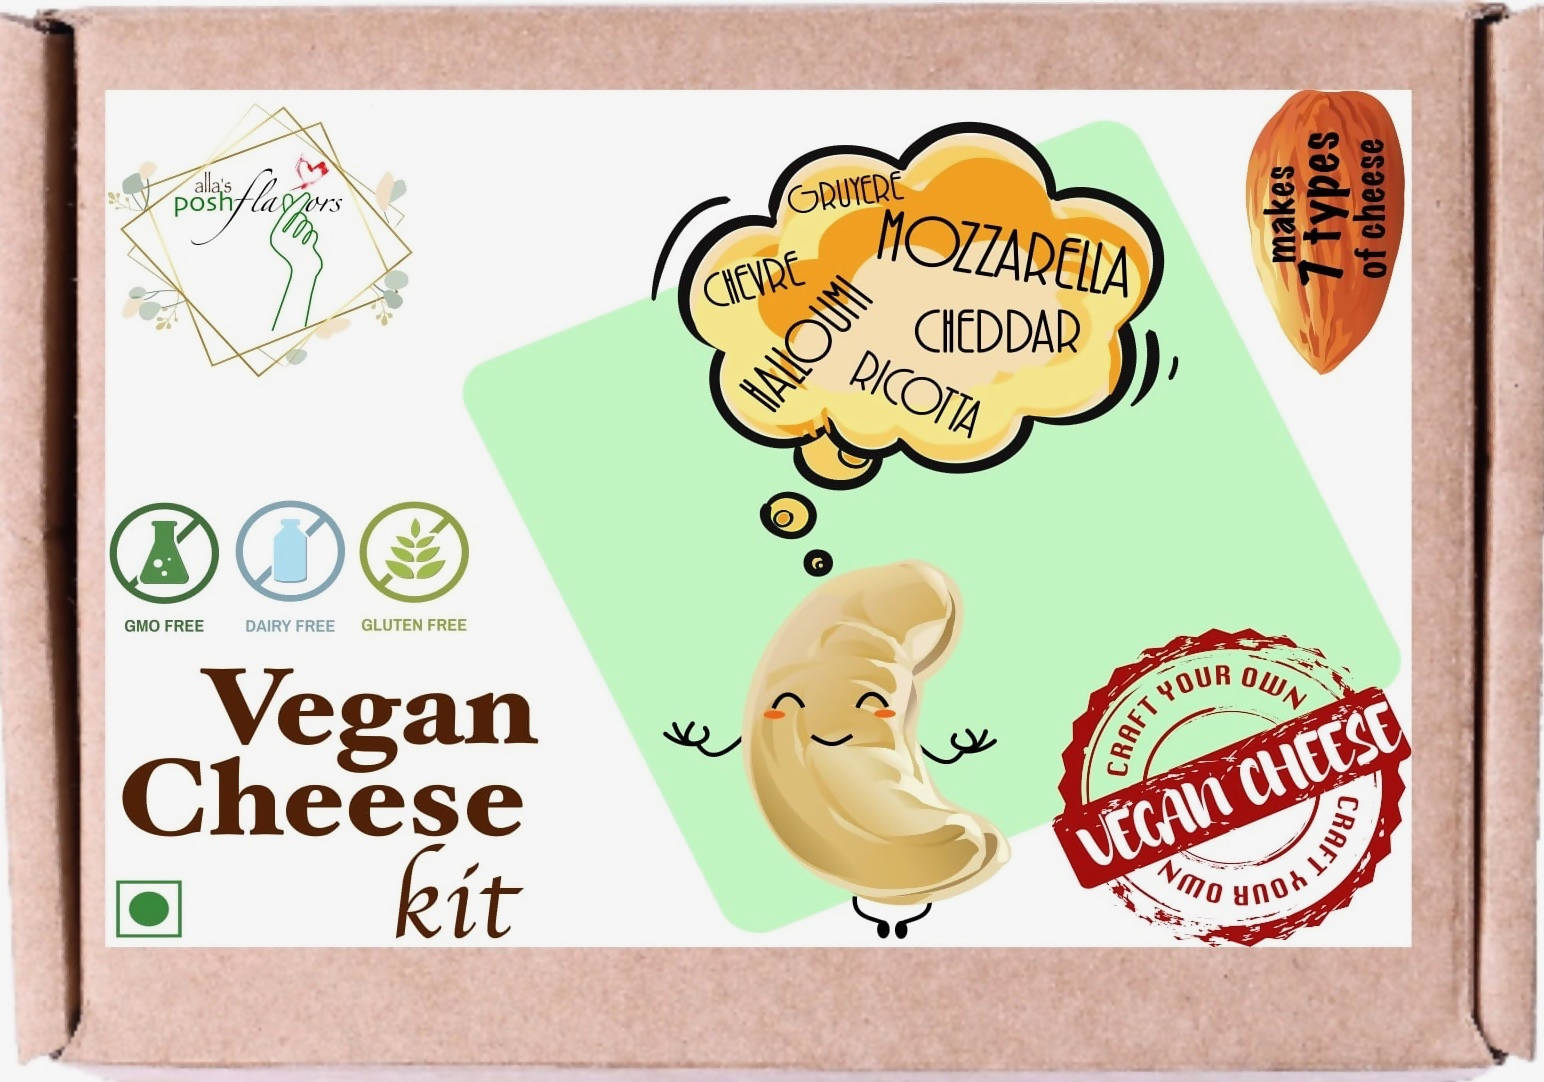 Vegan Cheese DIY Kit | Make Probiotic-rich Vegan Cheese at Home | Easy to Use, Dairy Free, Cruelty Free